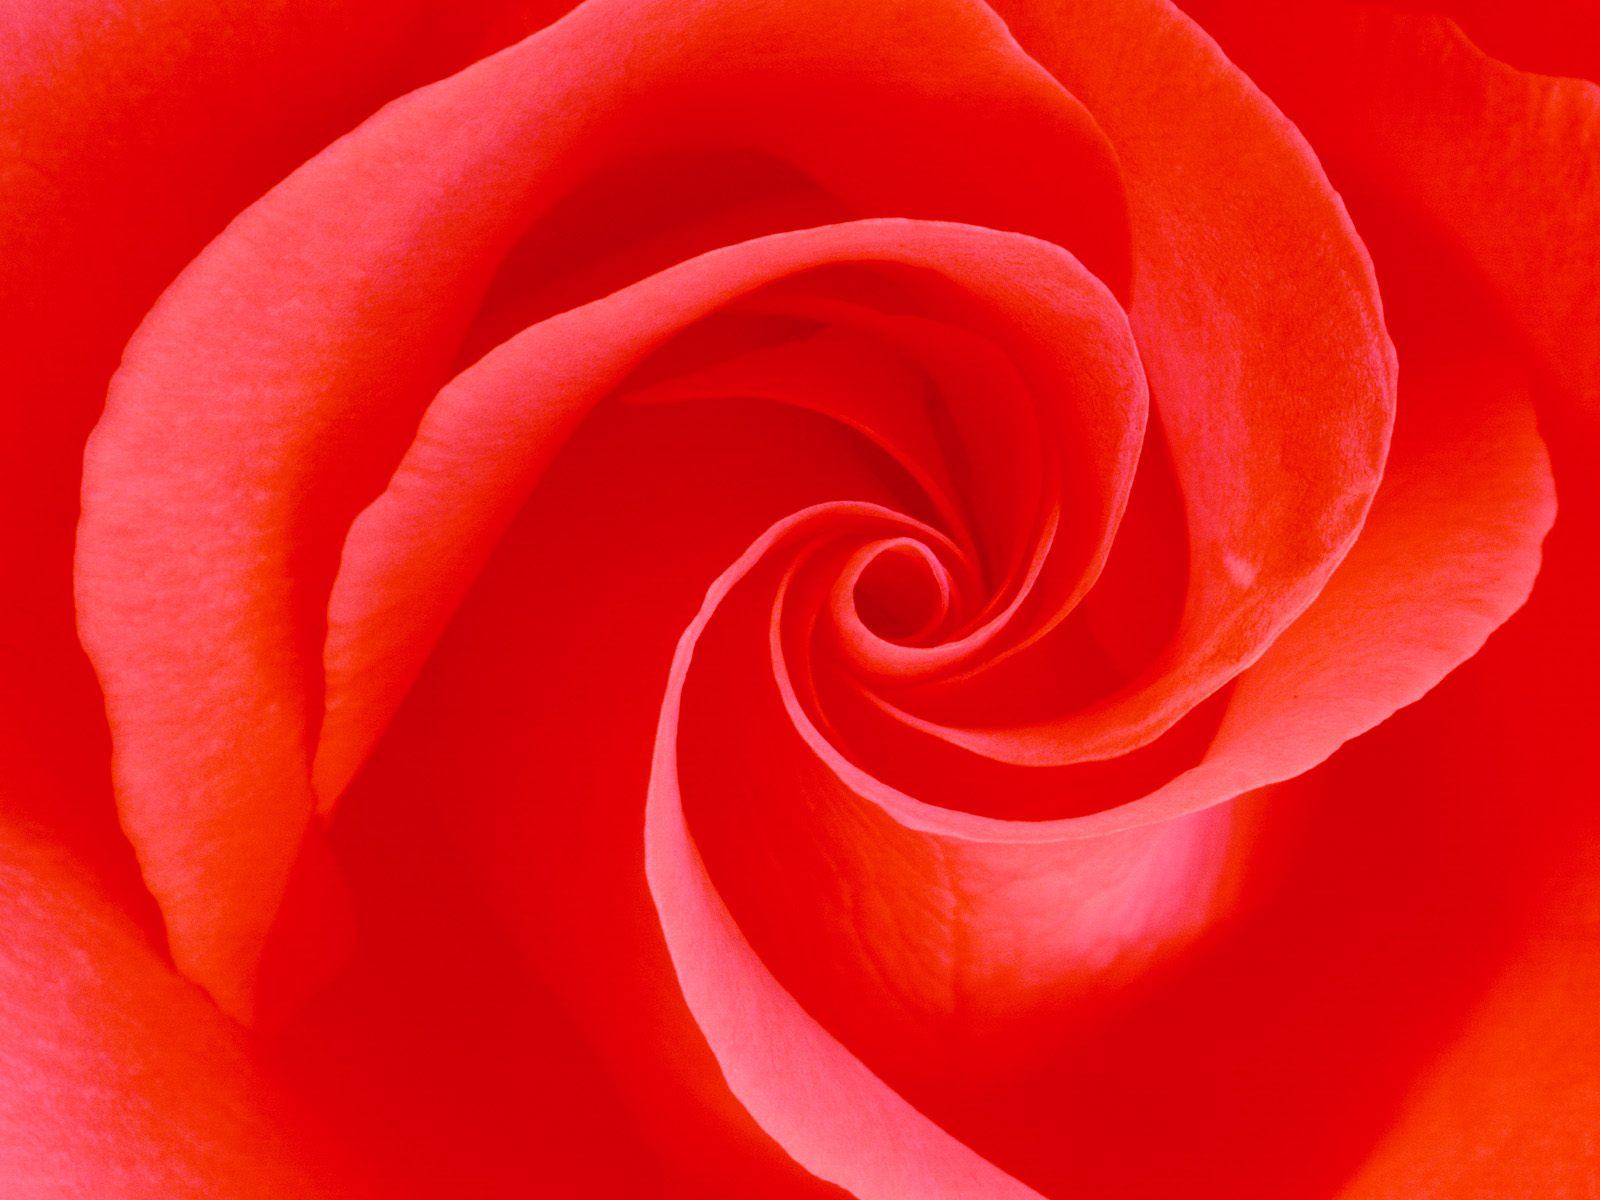 red%2Brose%2Bwallpapers%2Bby%2Bcool%2Bwallpapers%2B%2525285%252529 Wallpaper red rose garden